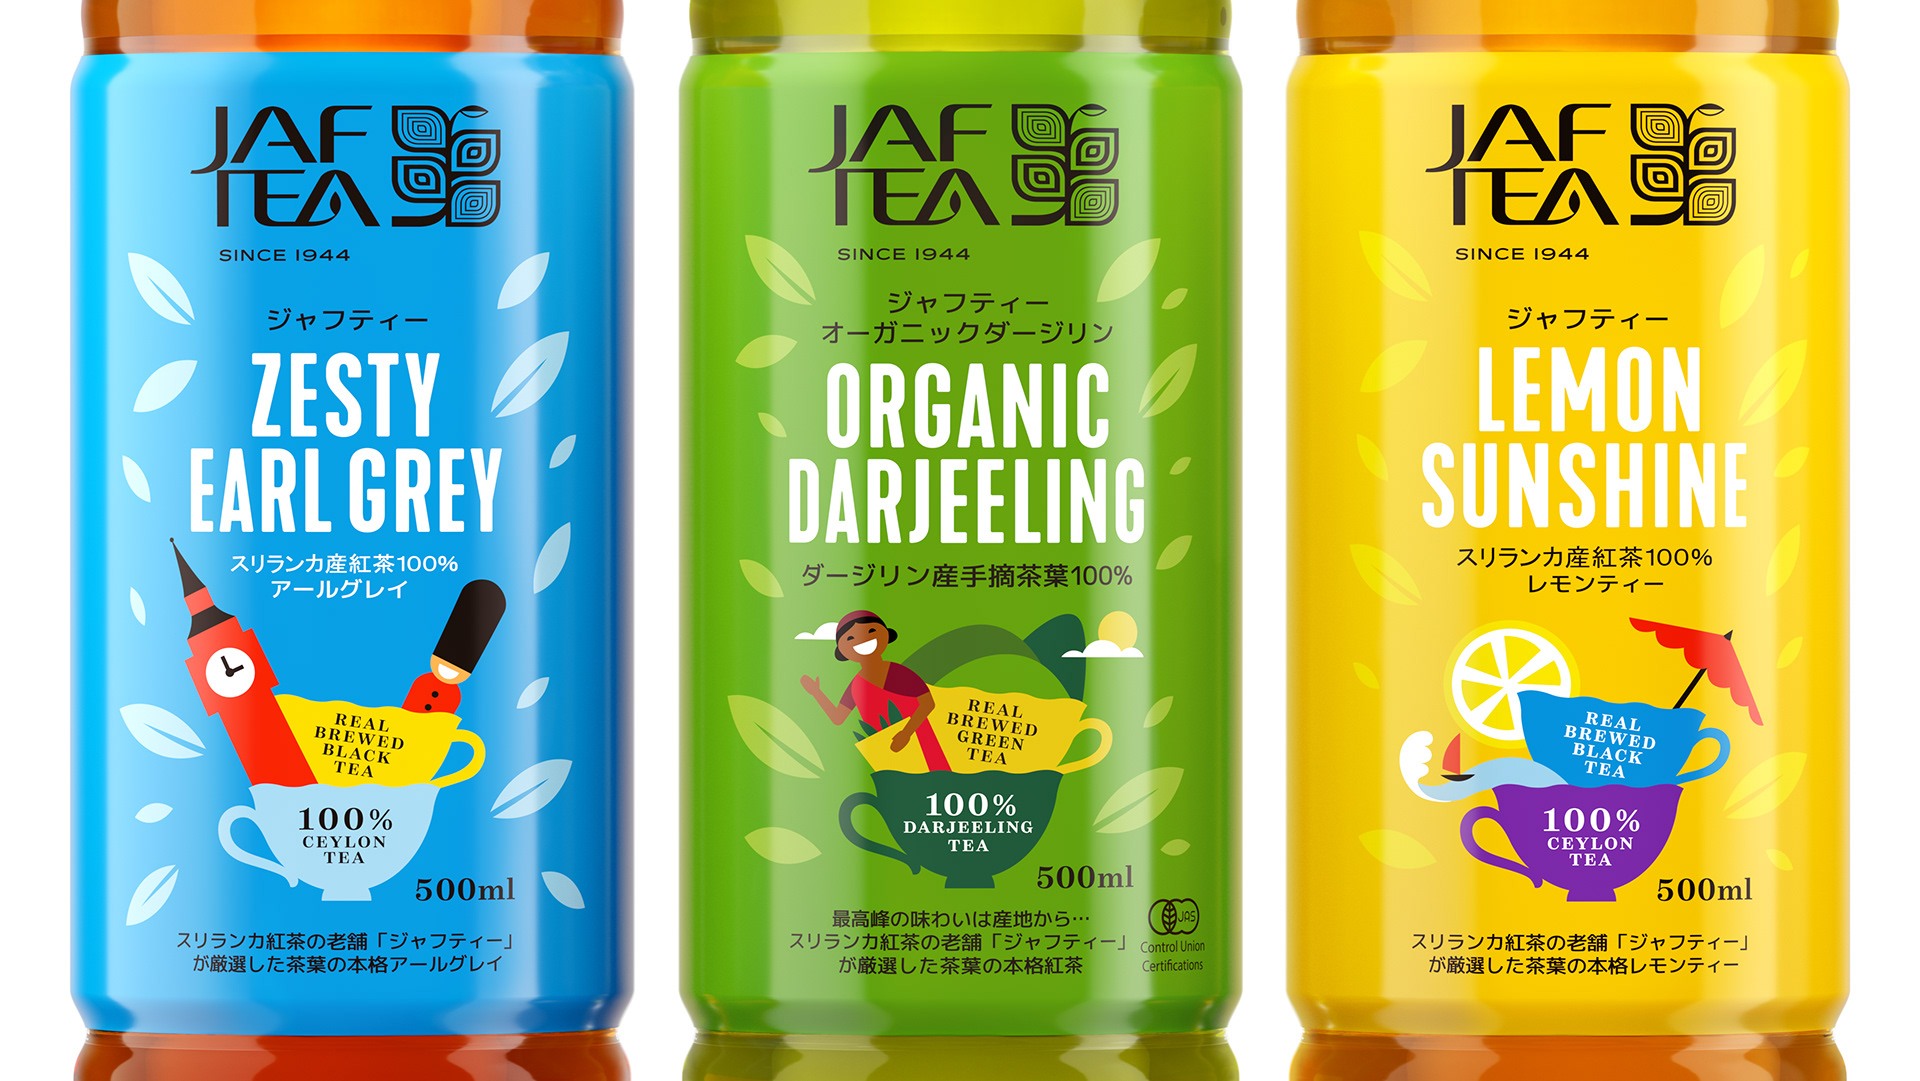 Three Types of Iced Tea Packaging Design for Jaf Tea Brand Created by Openmint